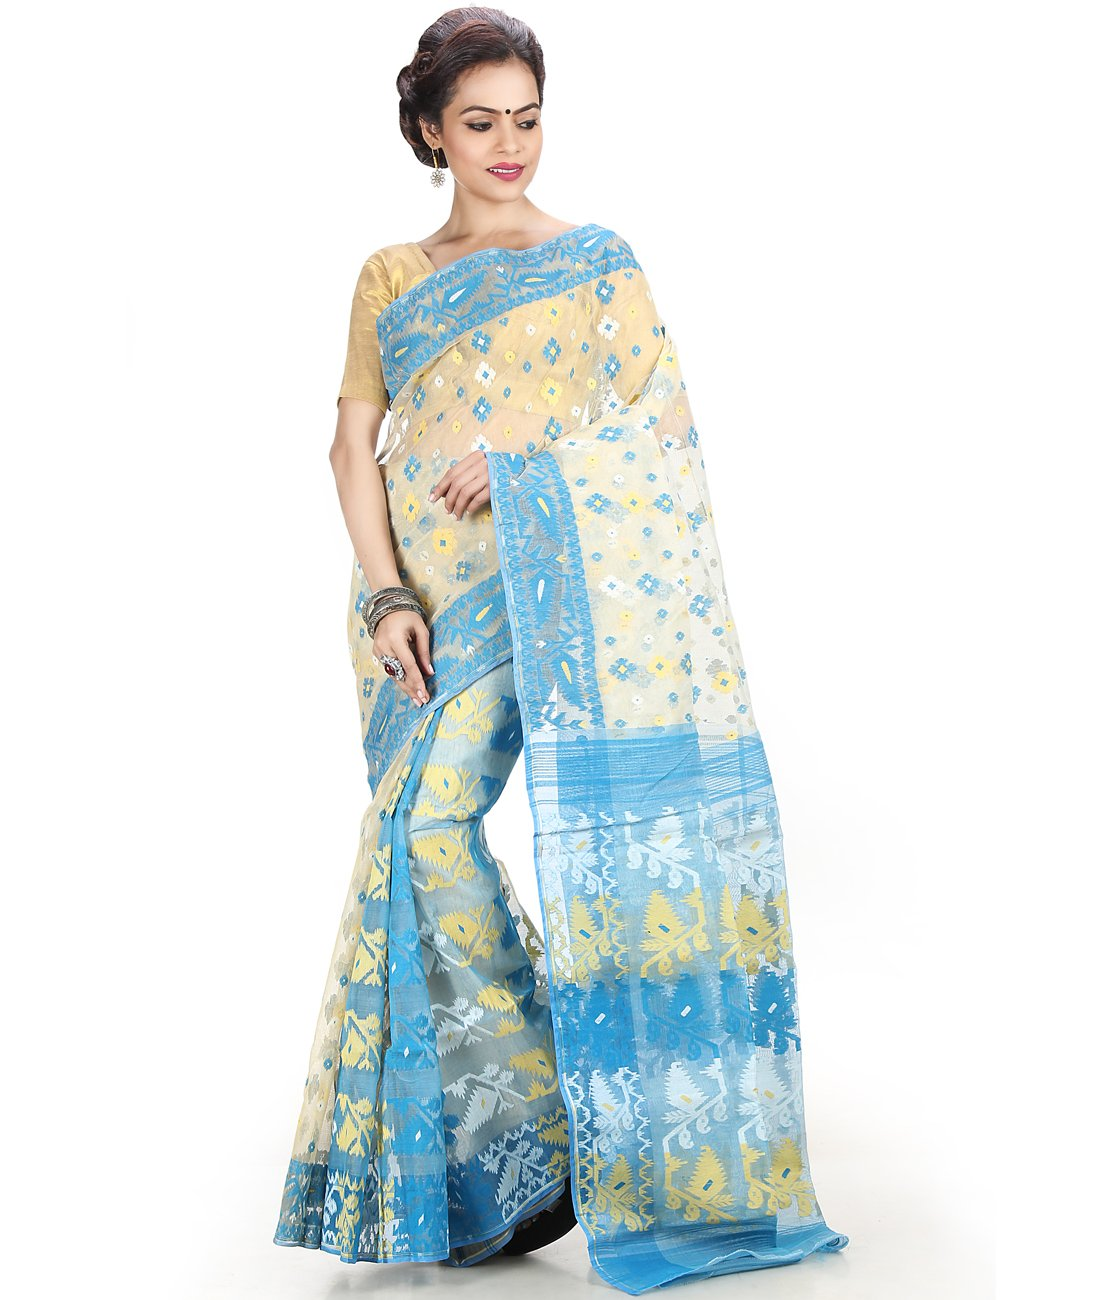 Maahir Garments Exclusive Indian Ethnicwear tant Cotton Off-White and Blue coloured Dhakai jamdani Saree